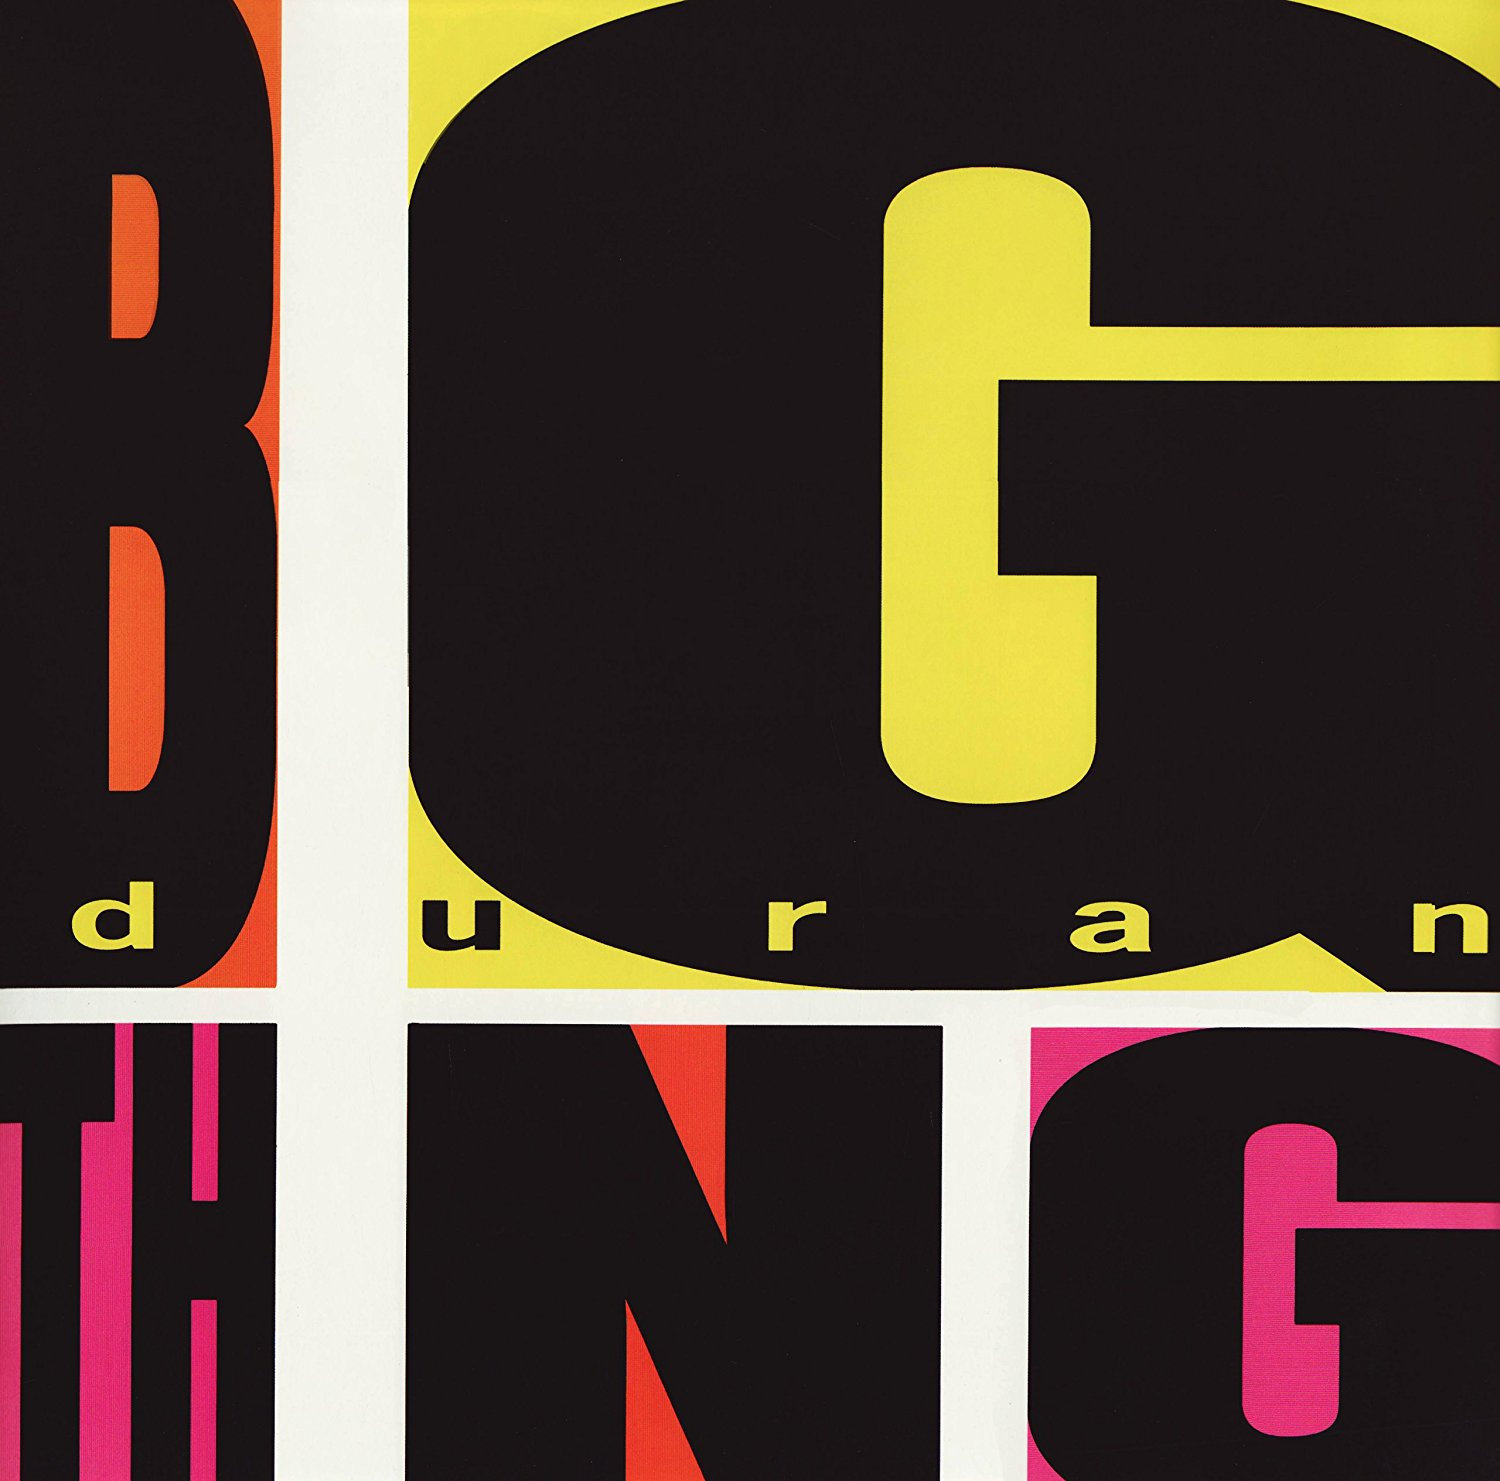 Duran Duran - Big Thing (ltd Ed - 2 Vinyl Lp Set)